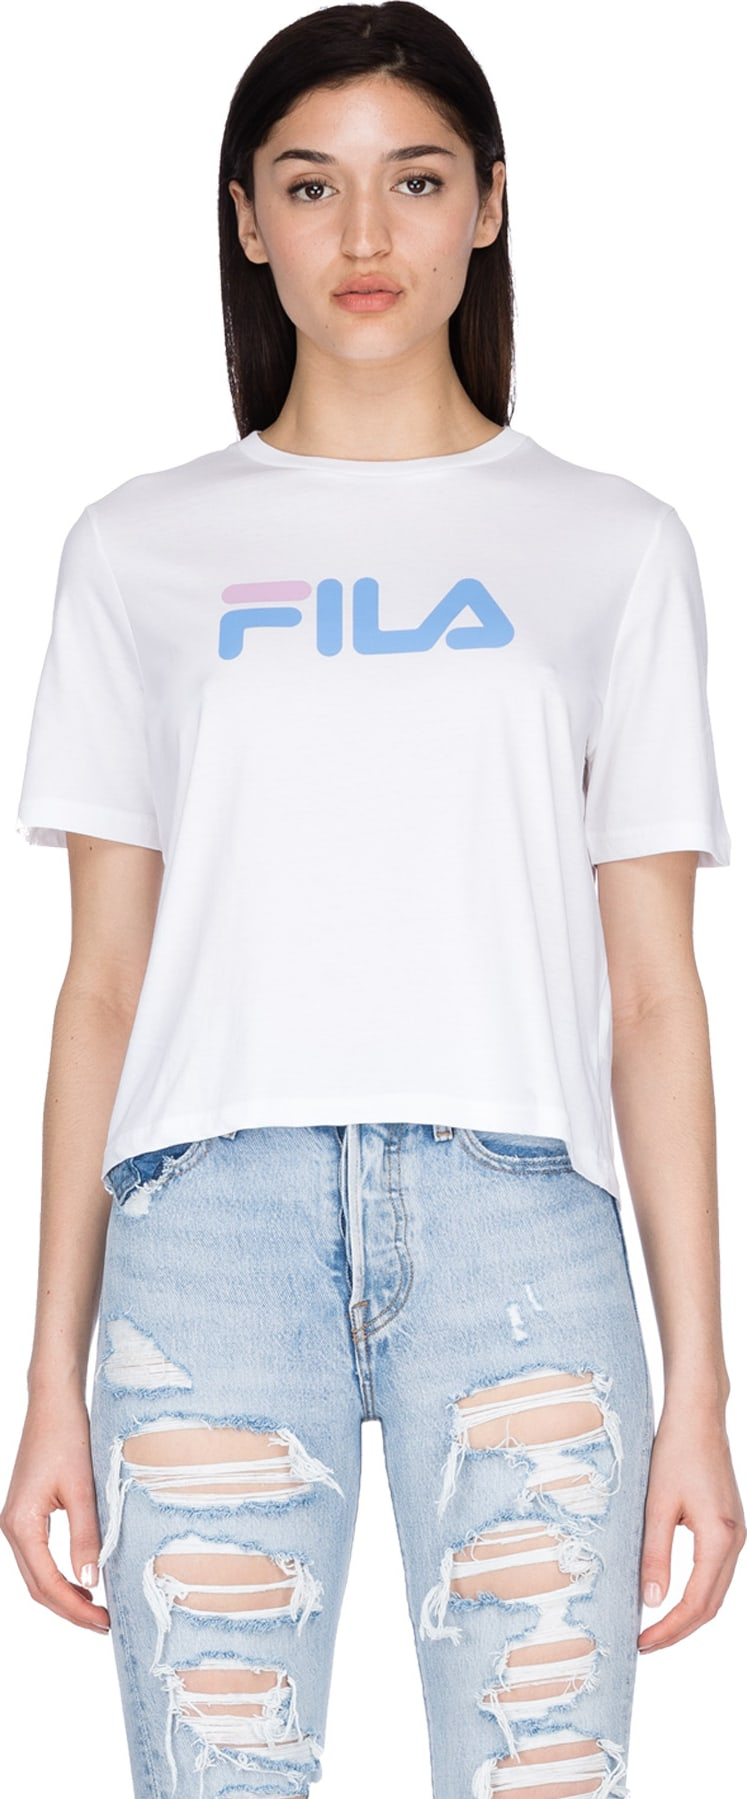 271f3dbf6ece Fila  Miss Eagle T-Shirt - White Lake Blue Orchid